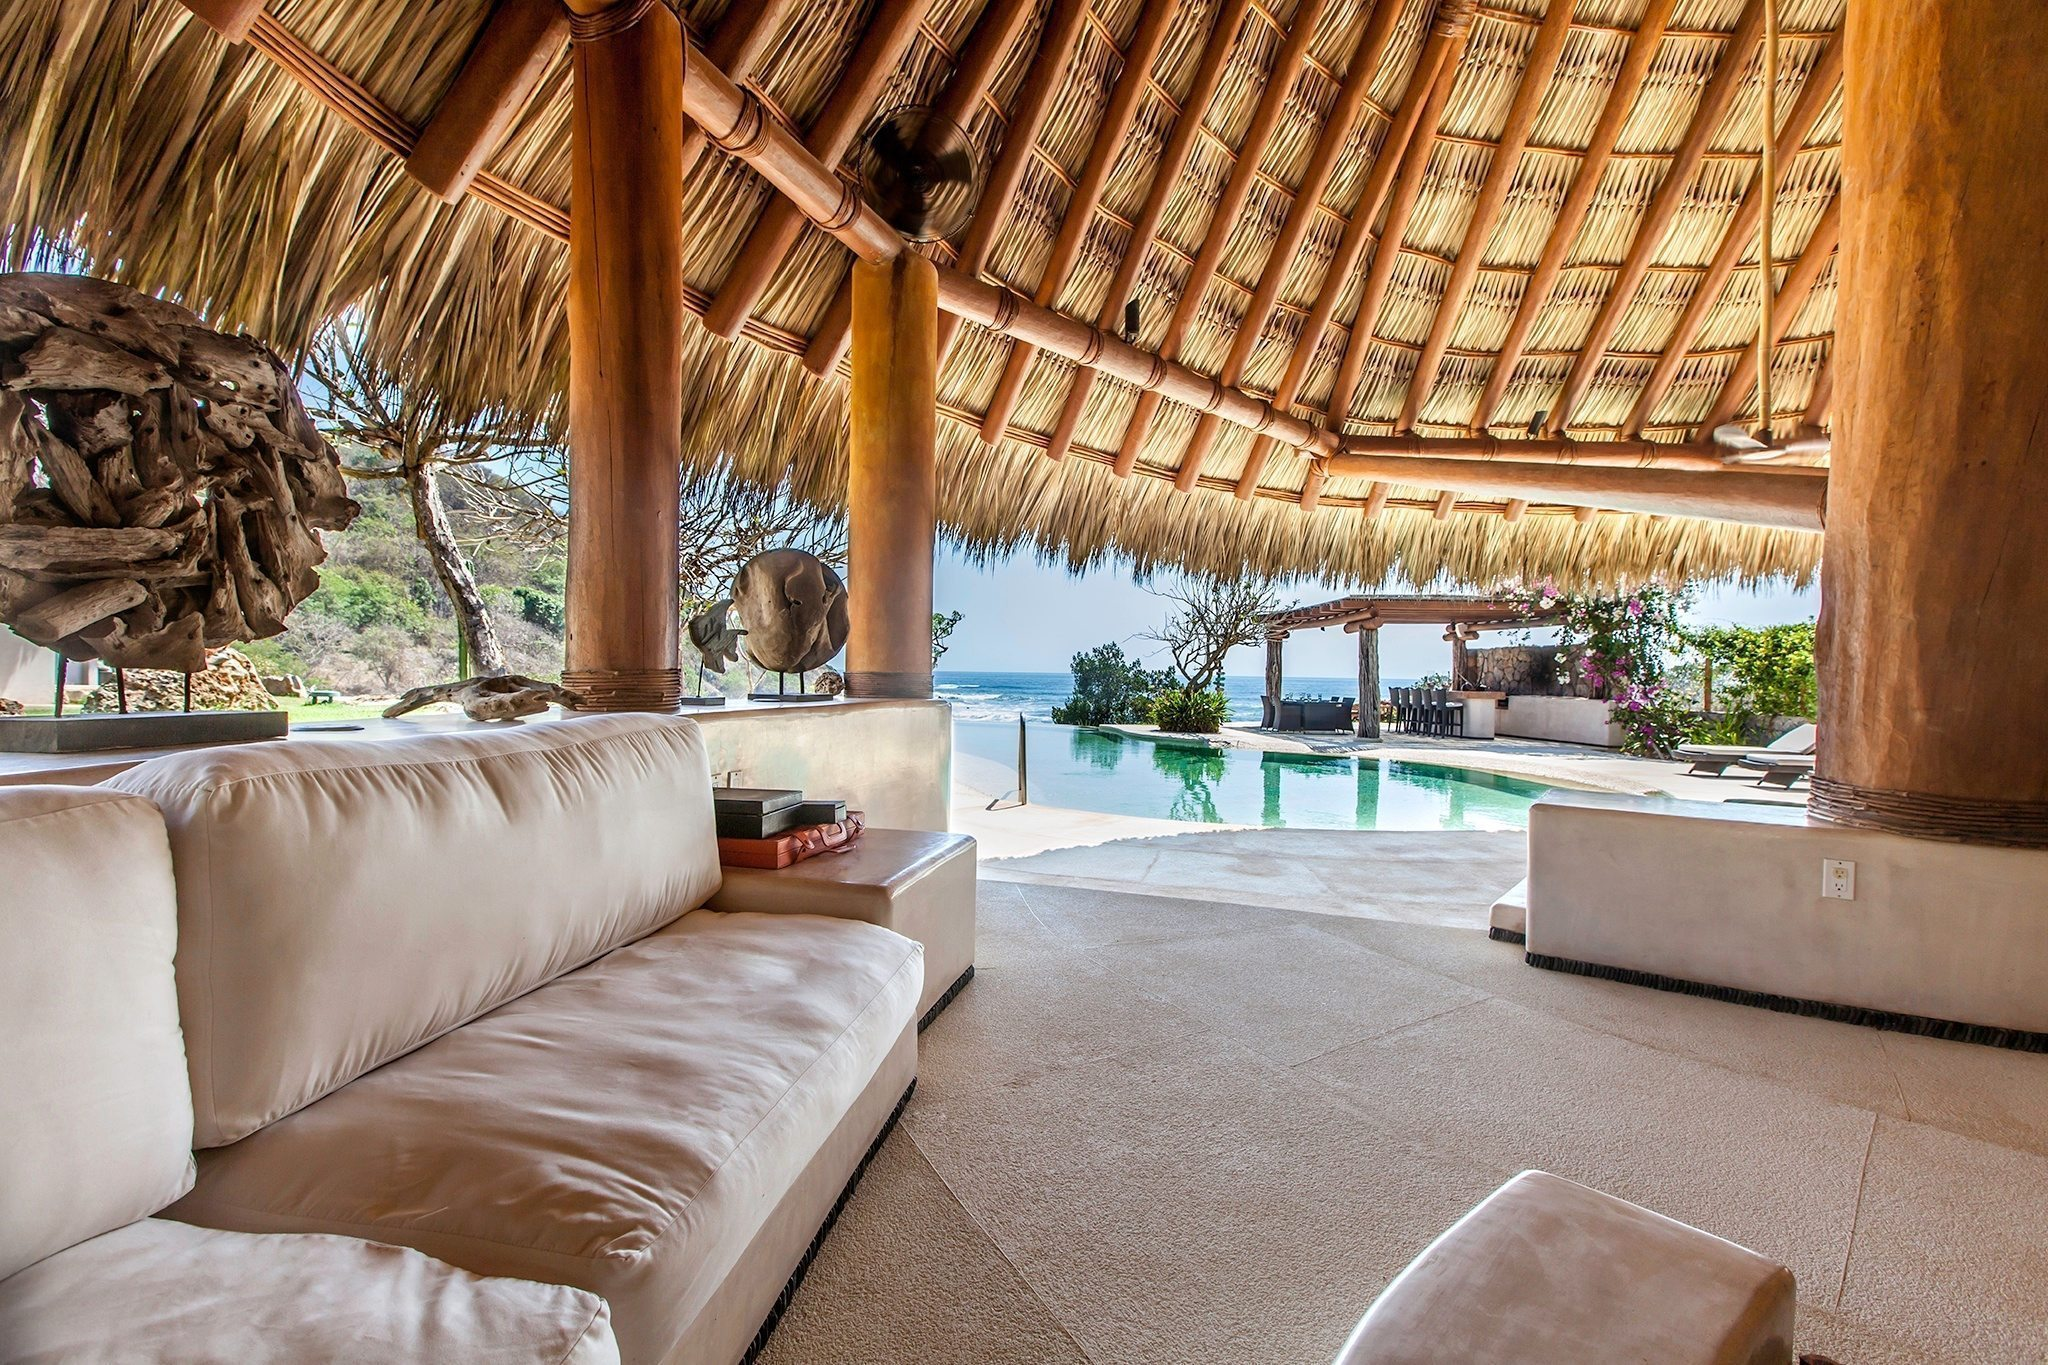 Palapa Seating with a View